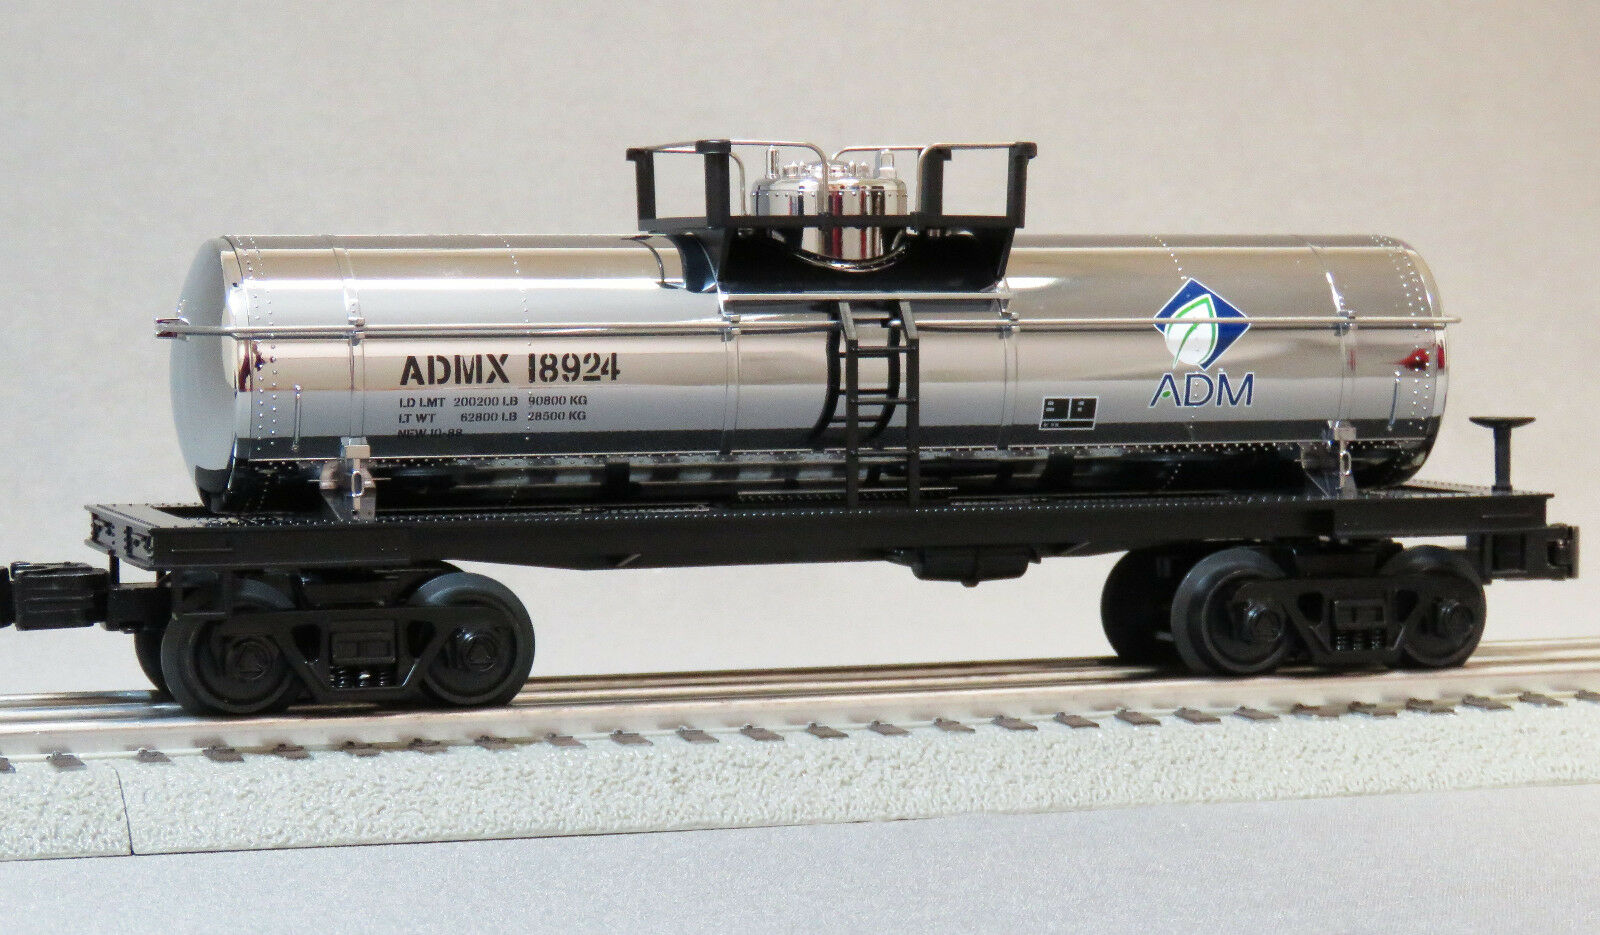 MTH RAILKING ADM 18924 SINGLE DOME TANK CAR O GAUGE train freight 30-4248-1T NEW